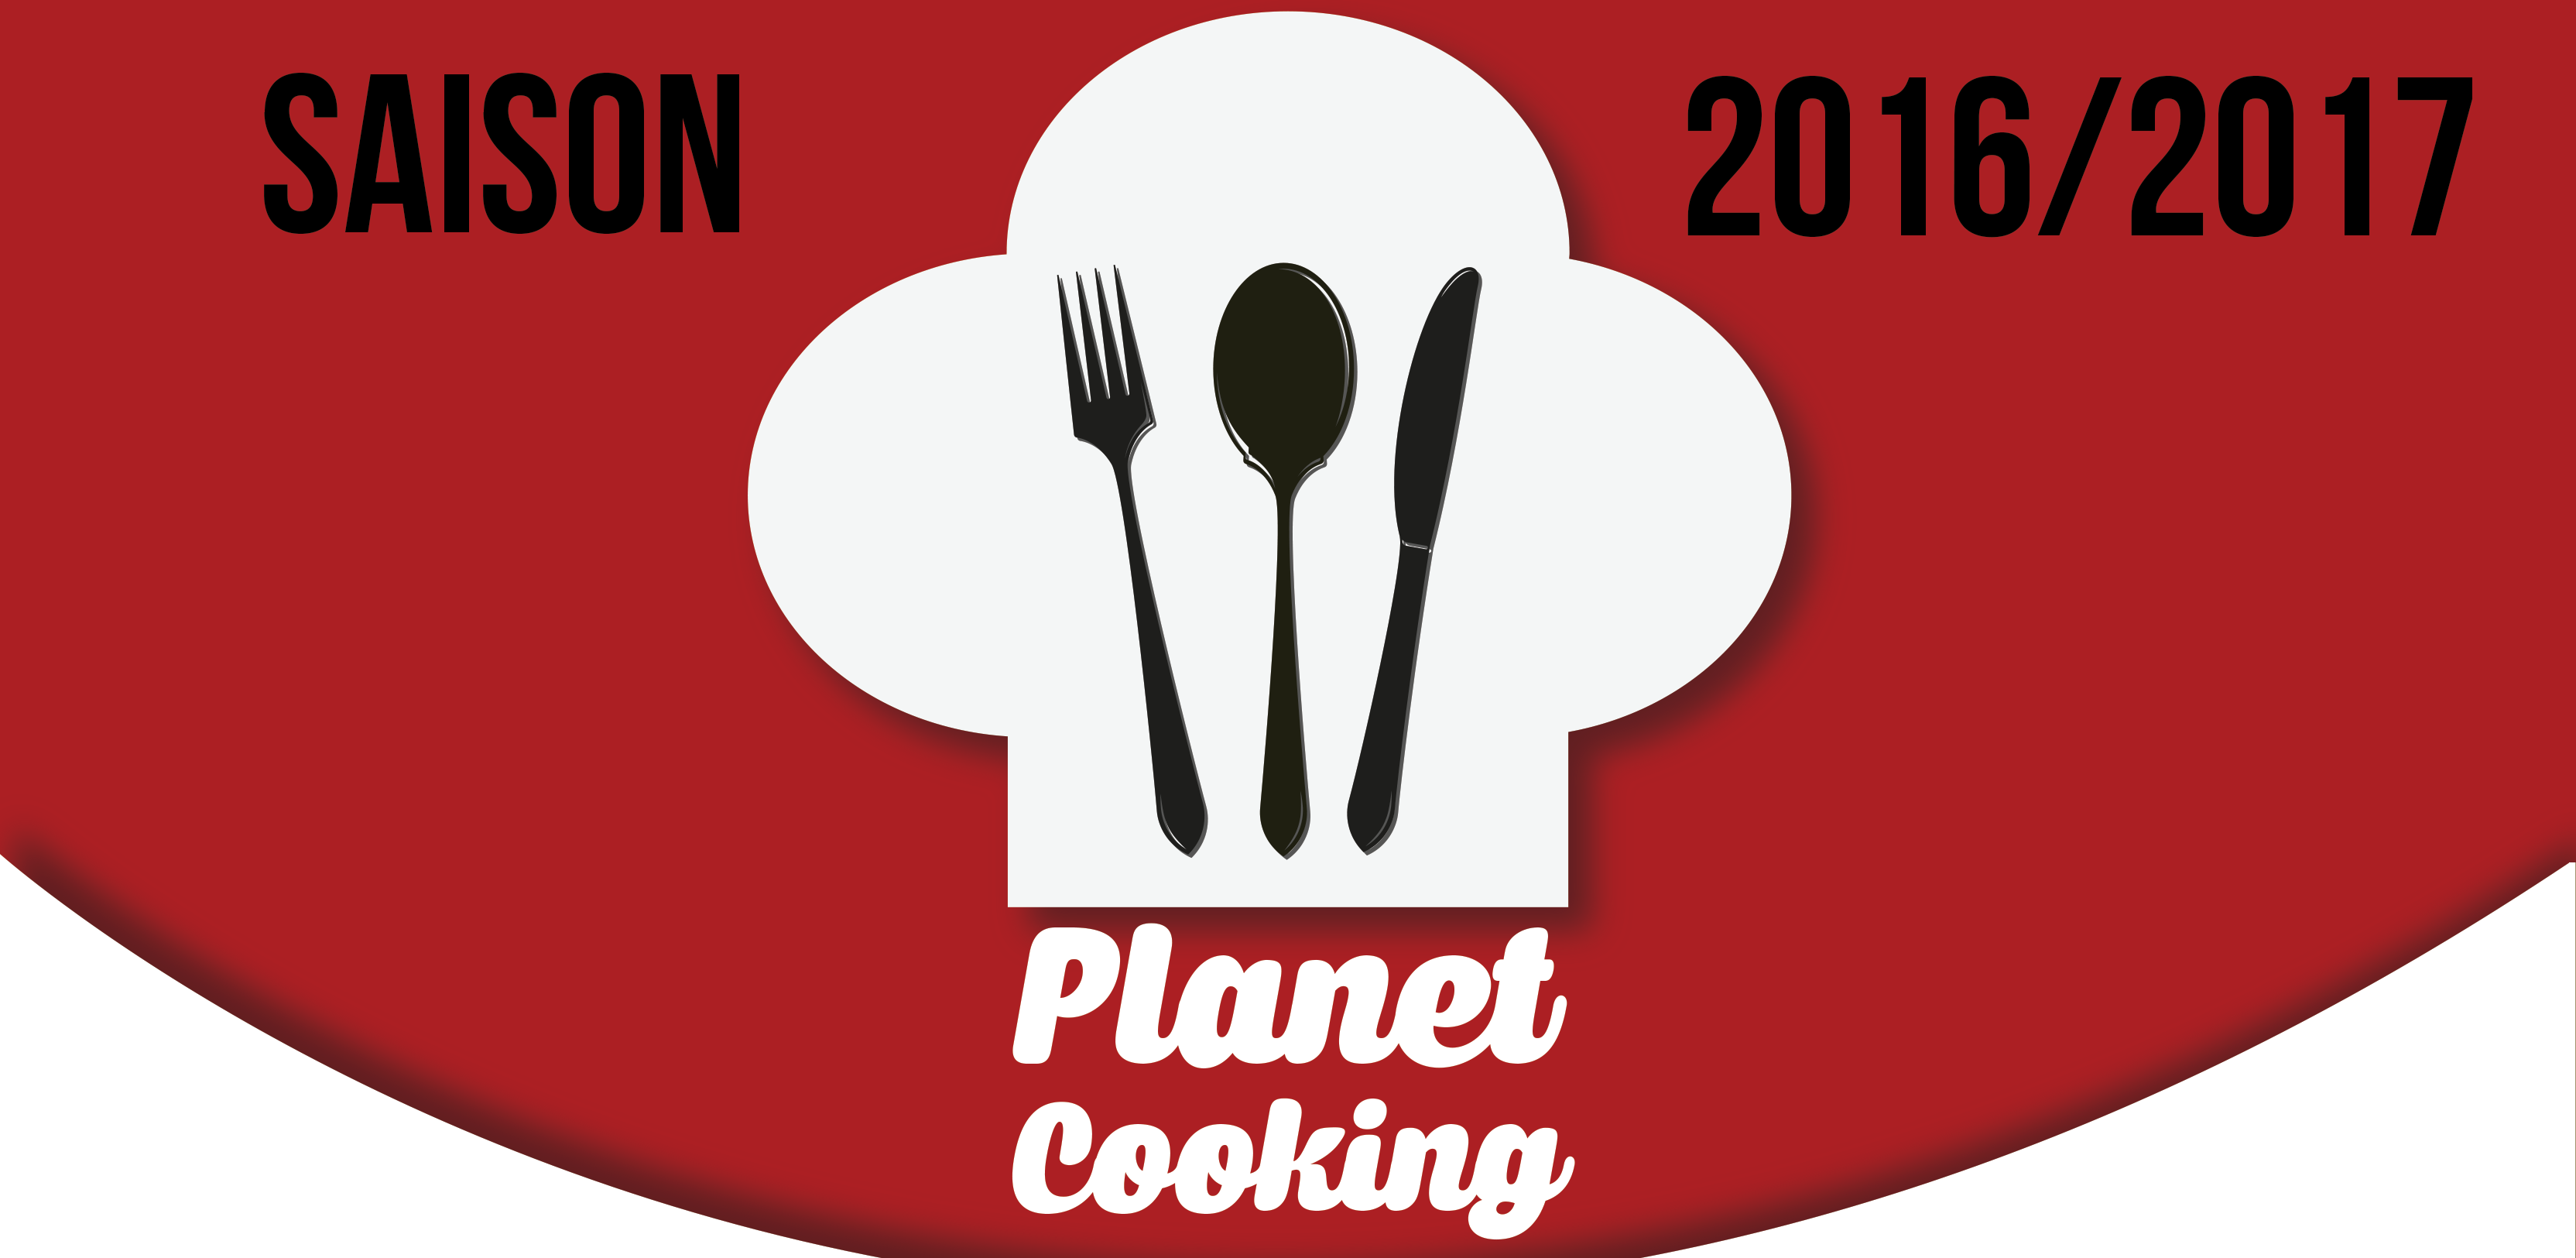 Planet Cooking